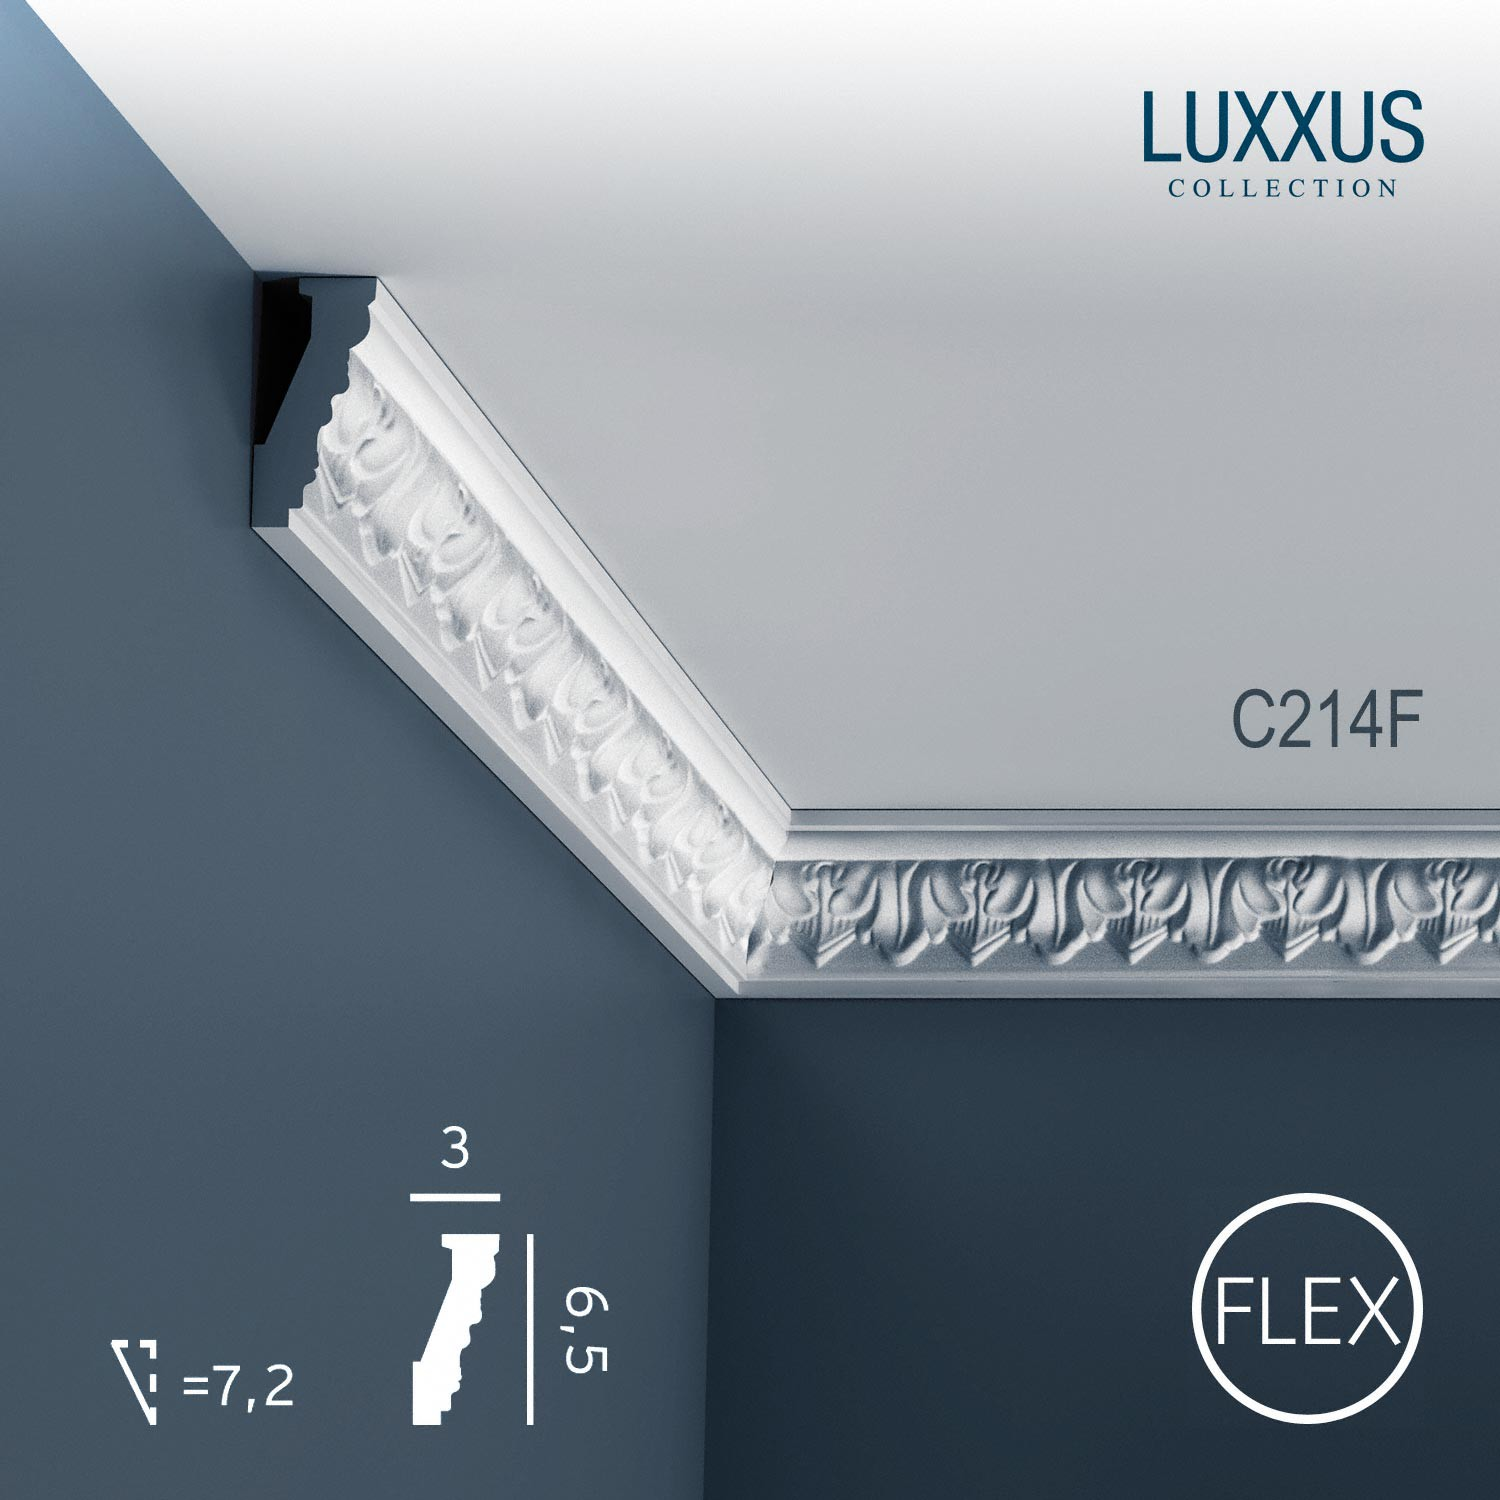 Element Decorativ Luxxus-flexible C214f Orac Decor